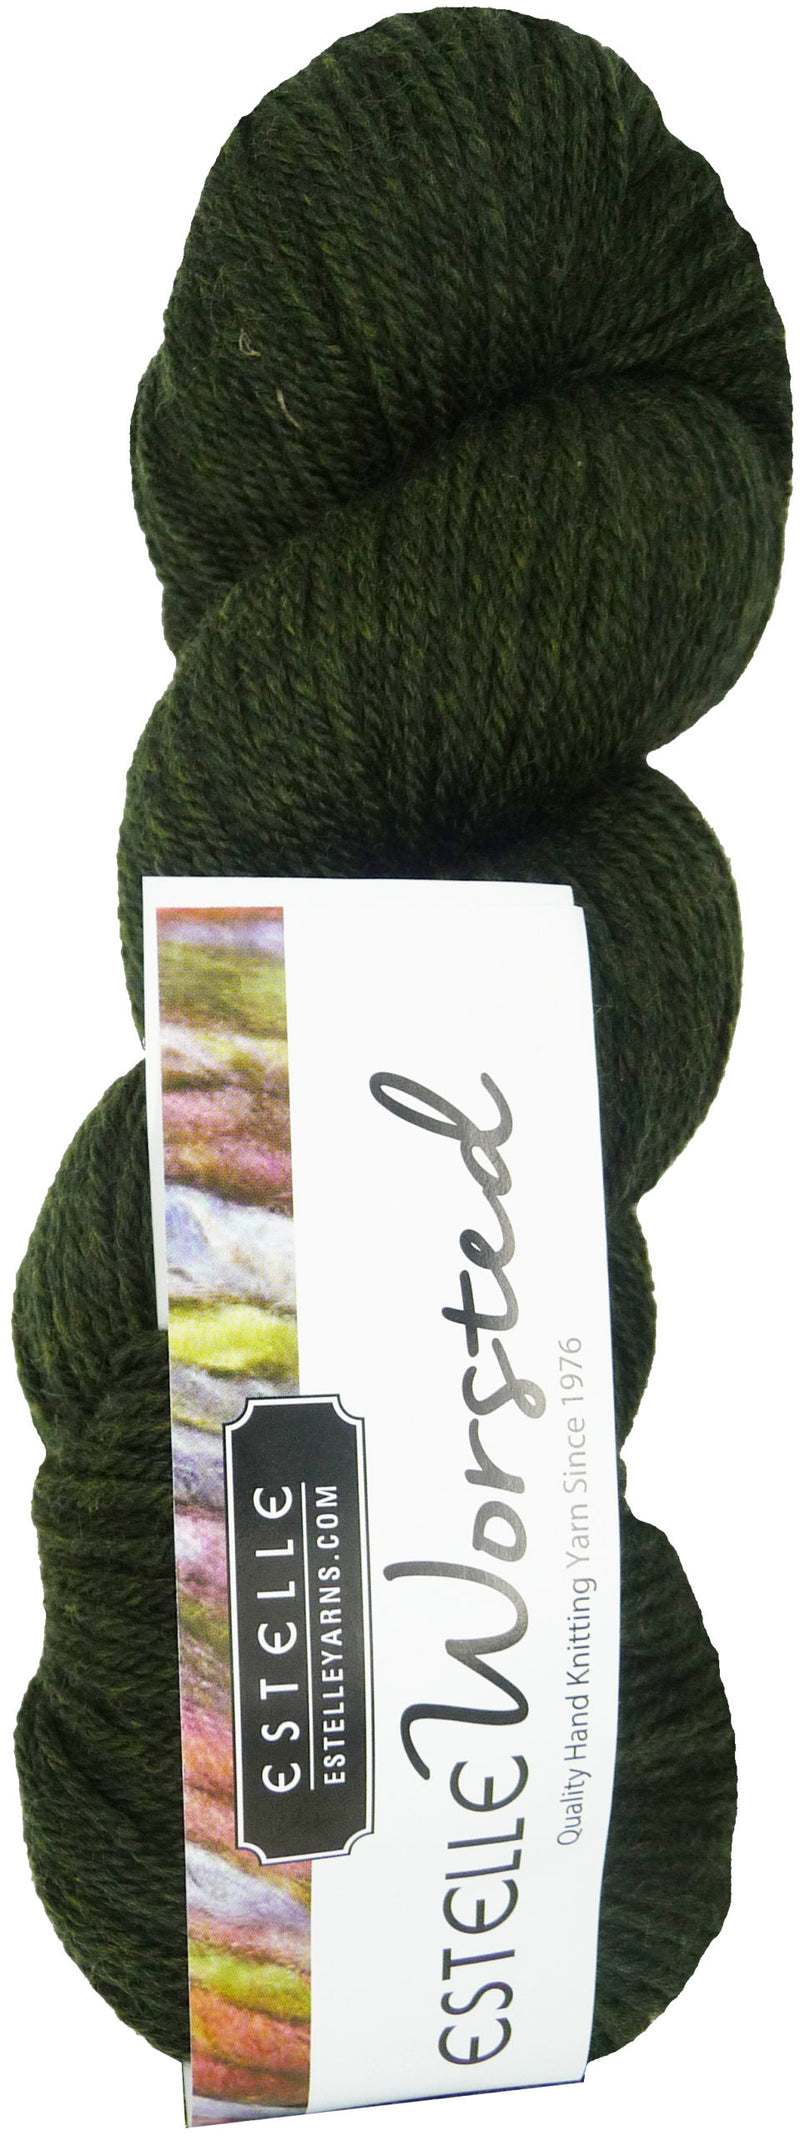 Estelle Worsted Skein